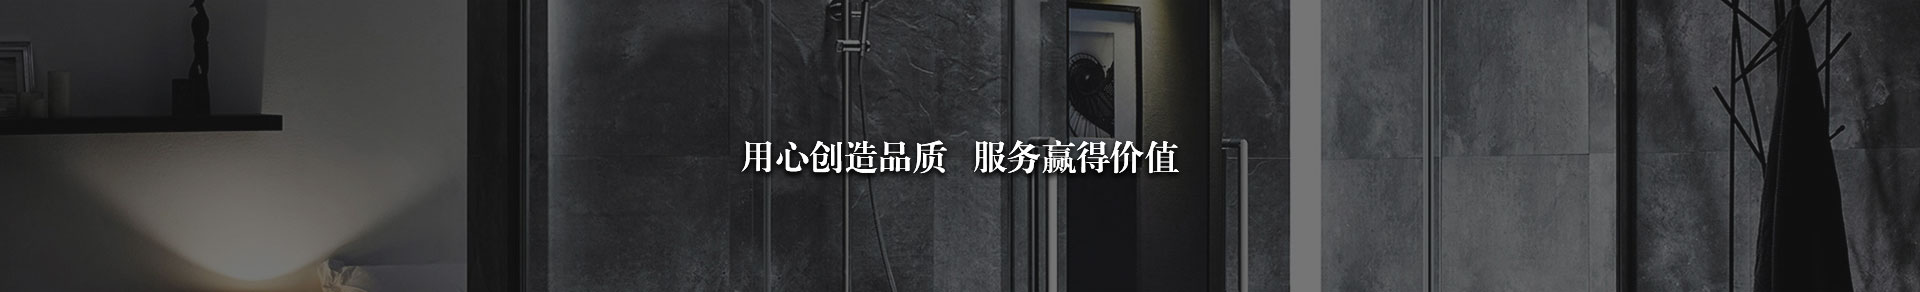 http://www.xuhaisen.com/data/upload/201908/20190816123450_929.jpg